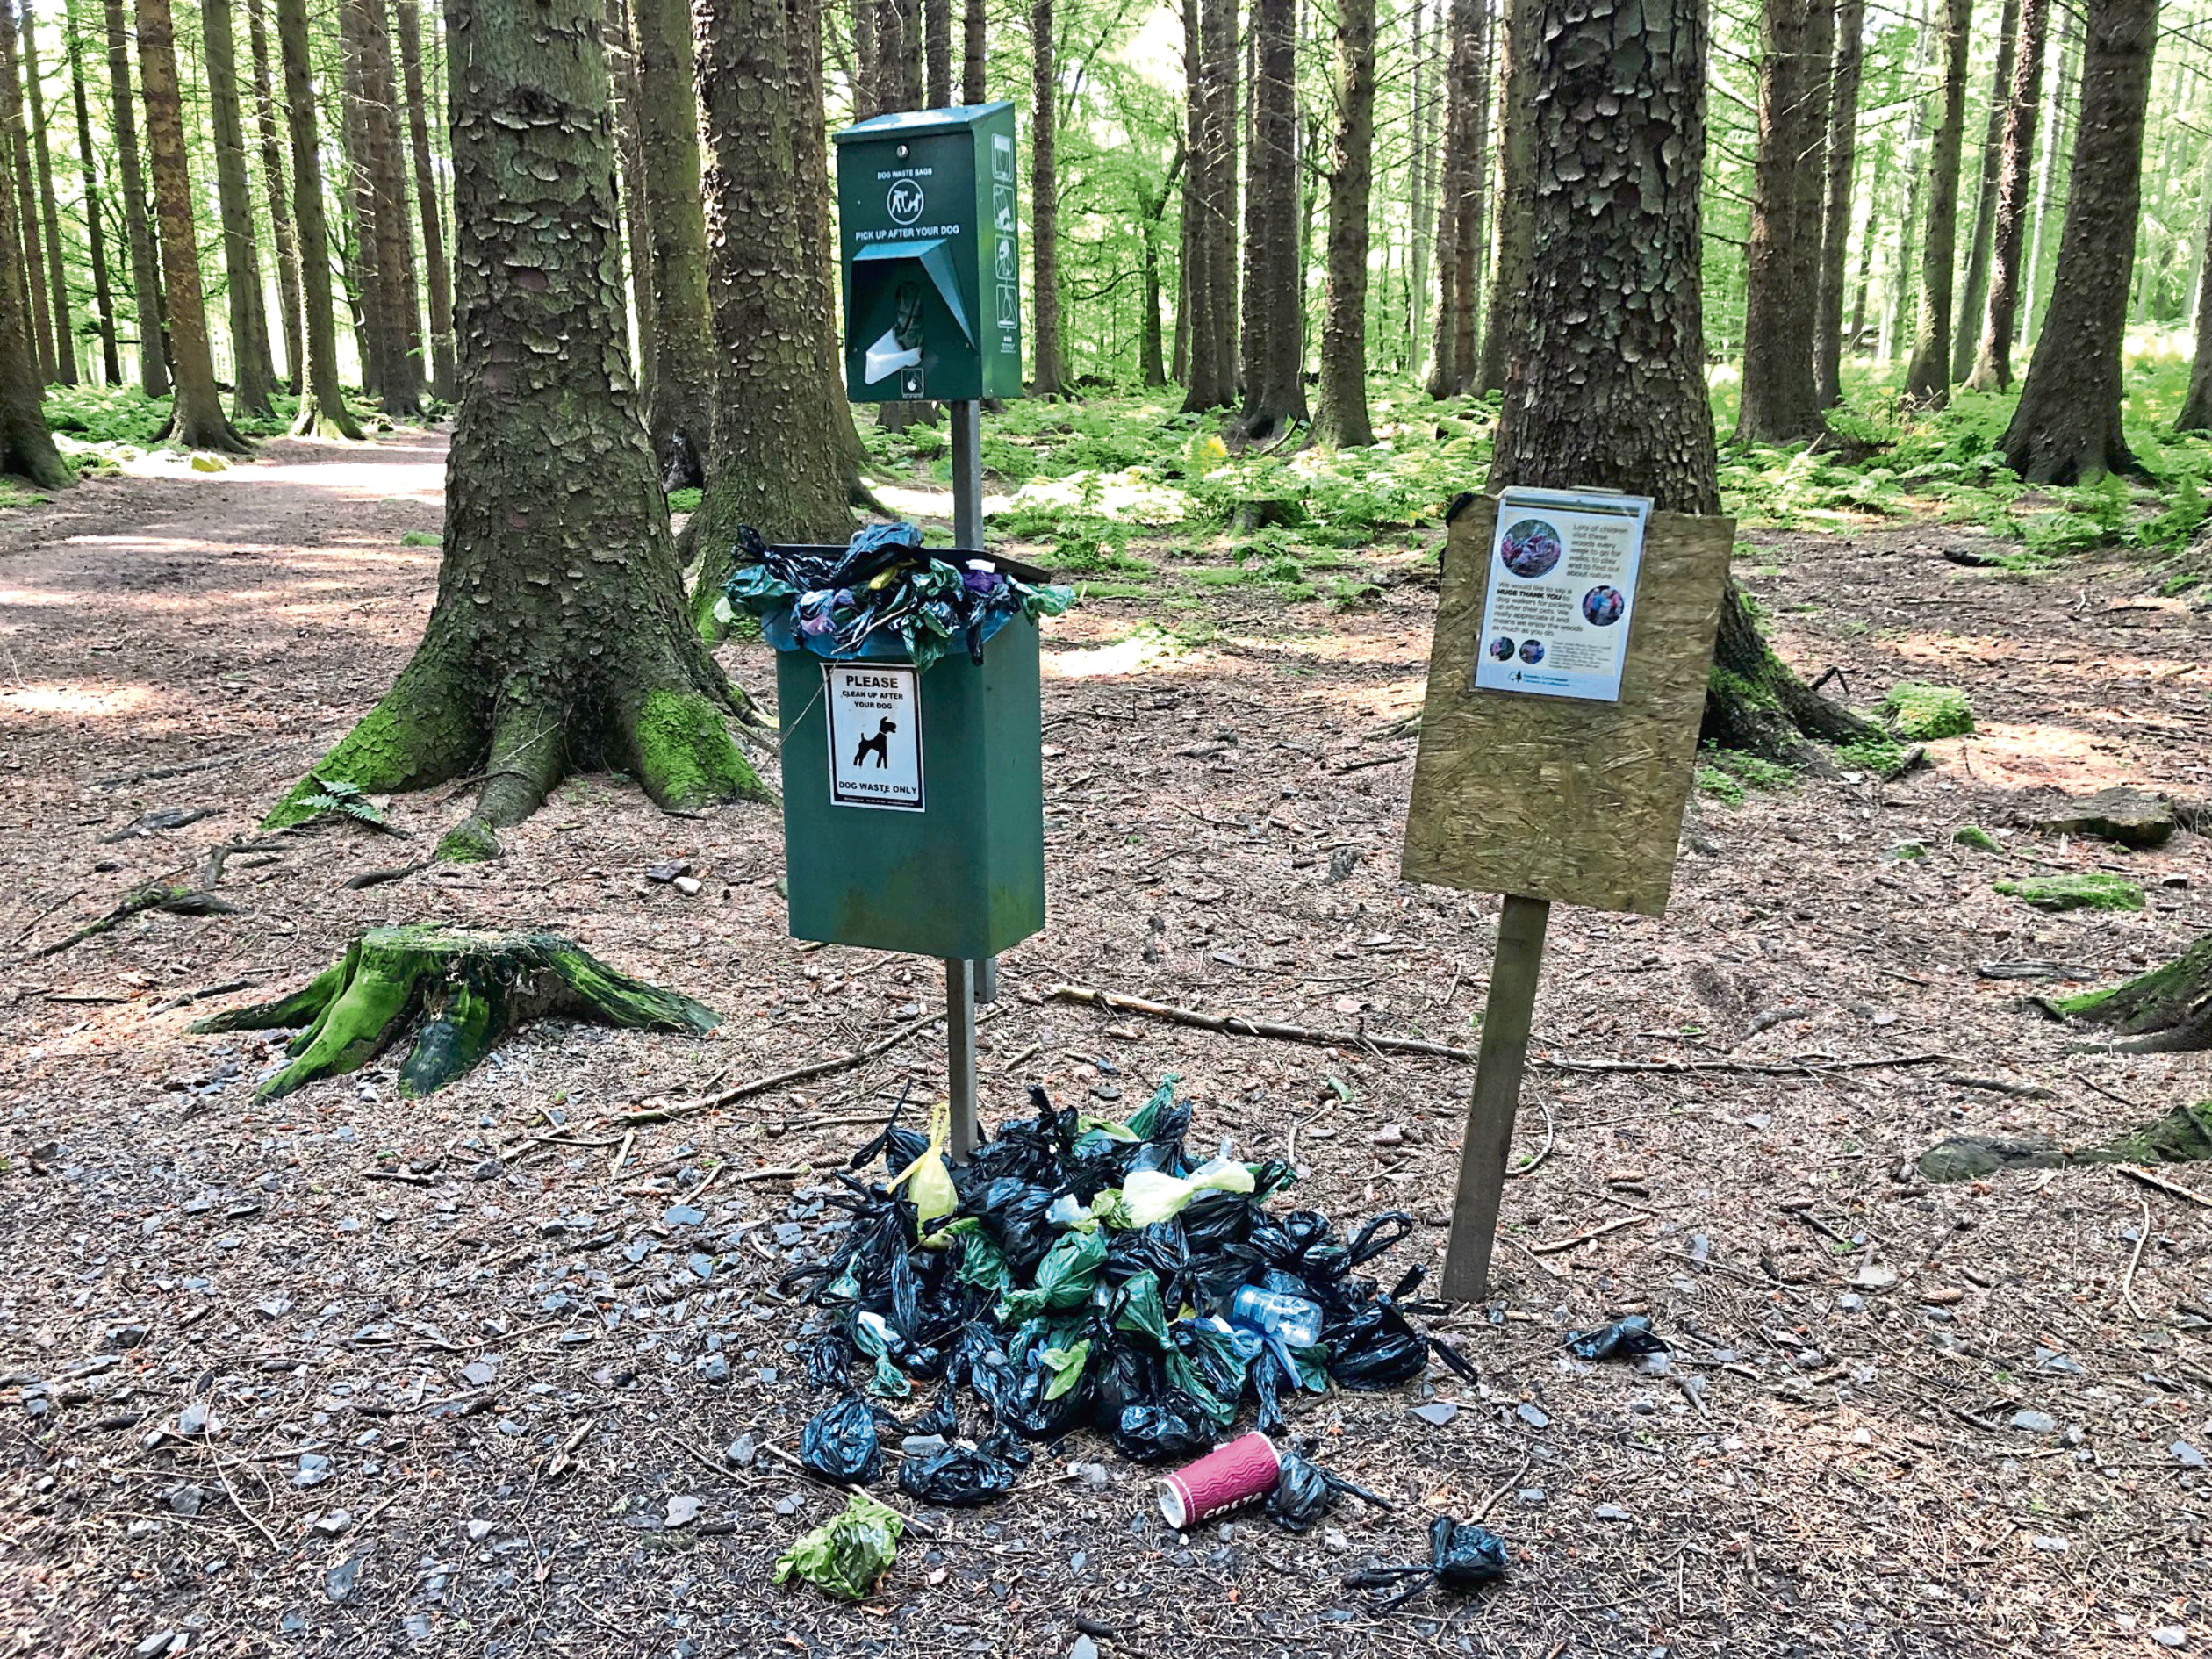 Dog poo bins at Countesswells Forest